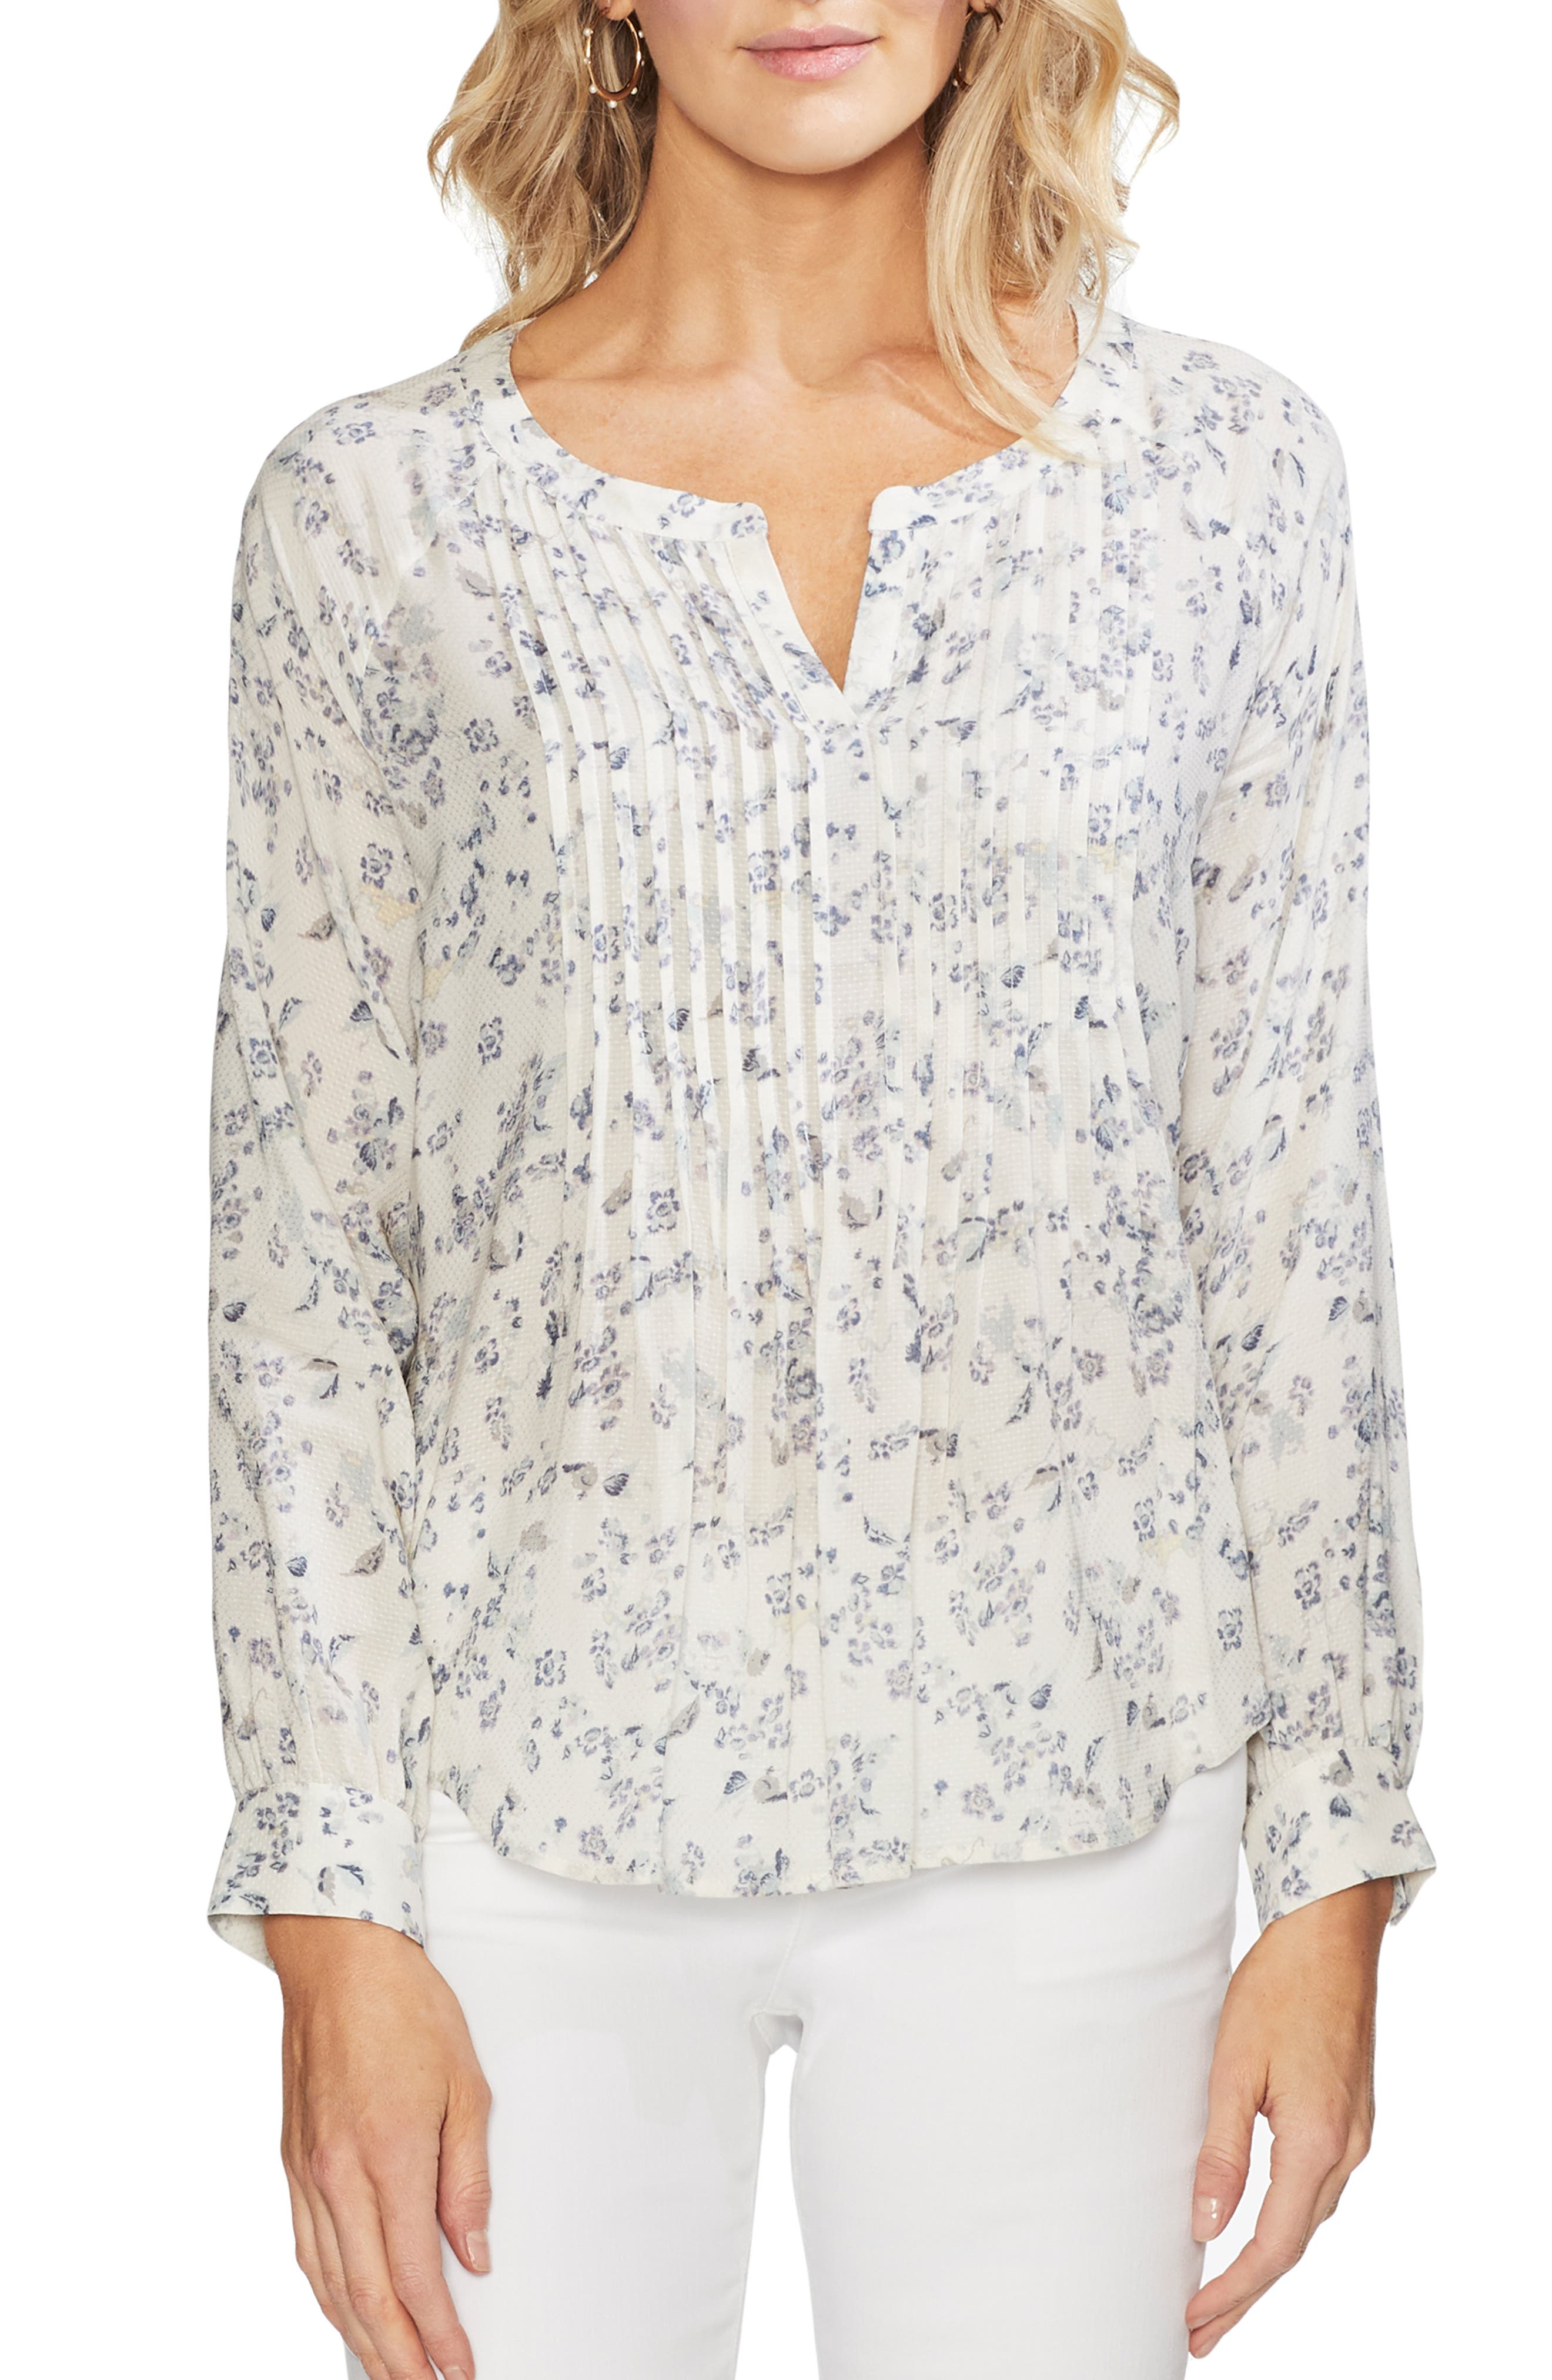 Vince Camuto Tops TRANQUIL DITSY PLEAT FRONT TOP